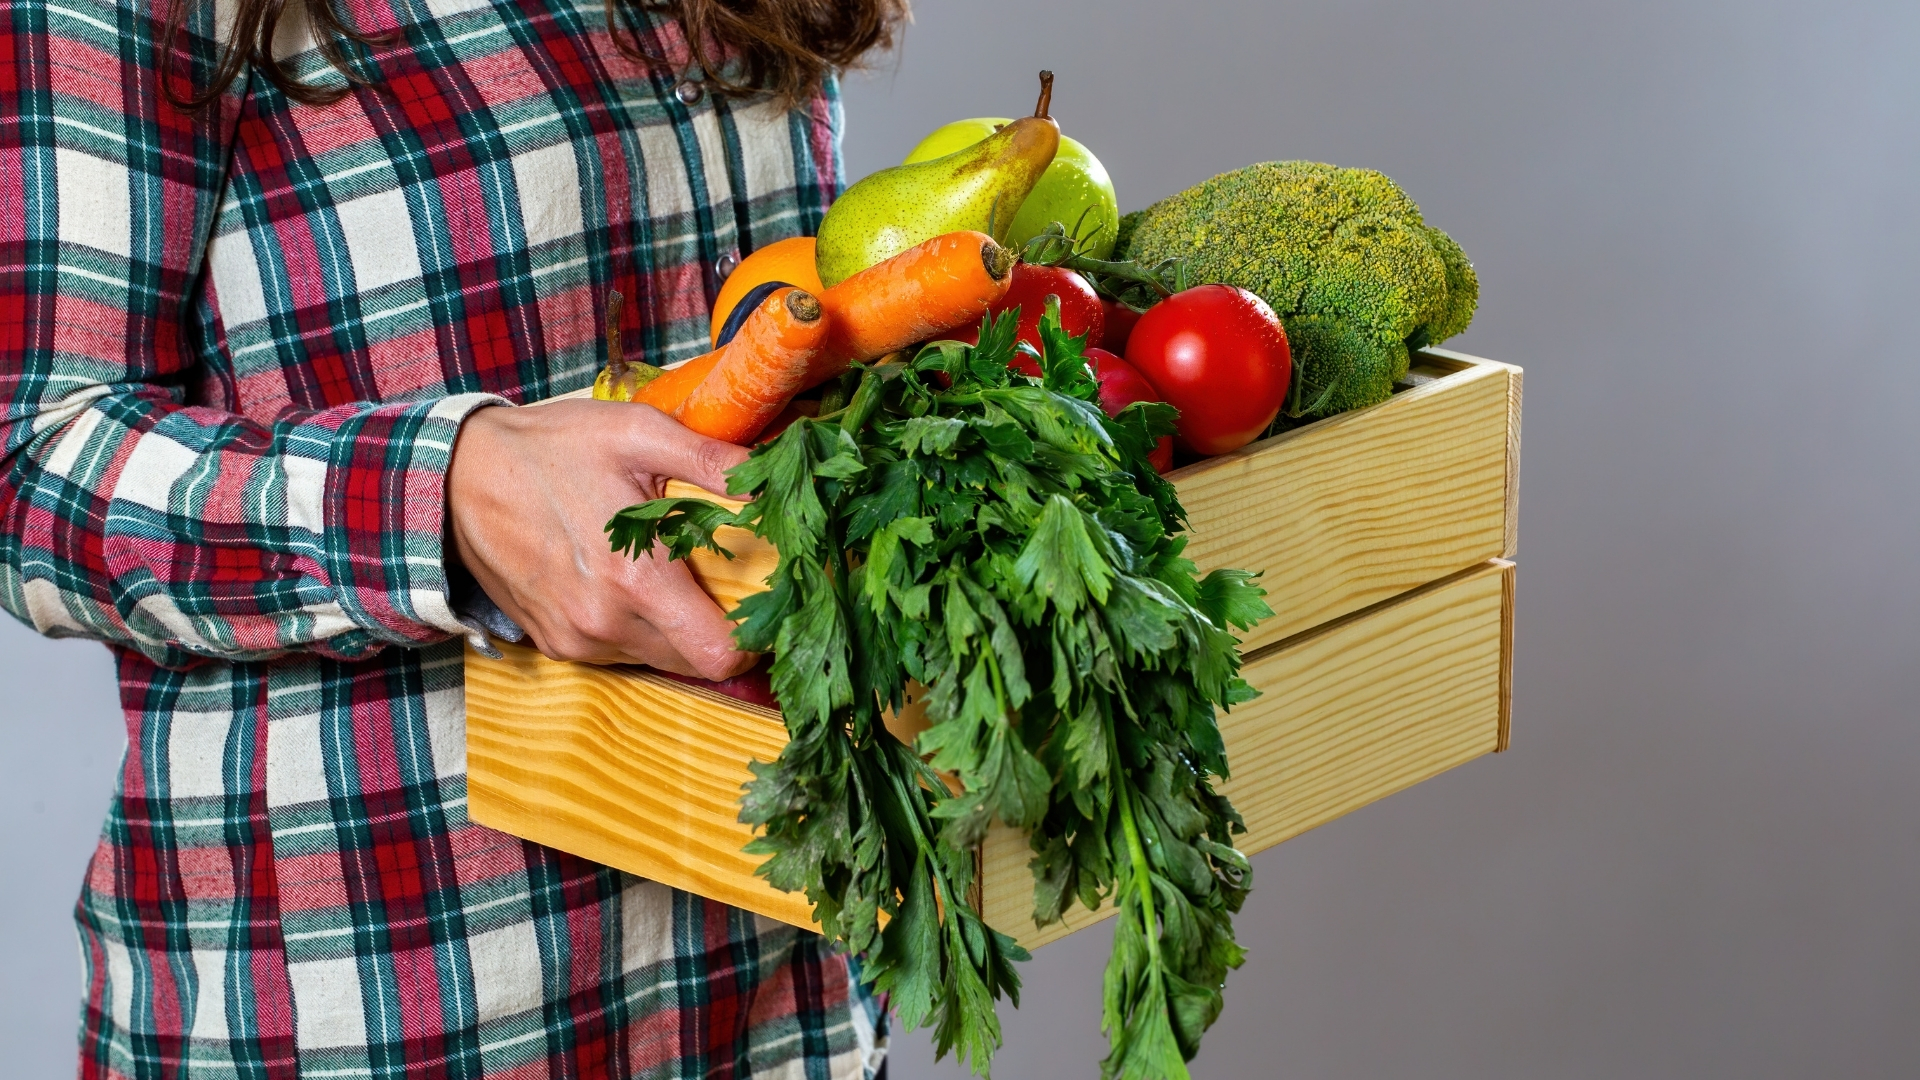 Woman Holding Assorted Vegetables in a Box